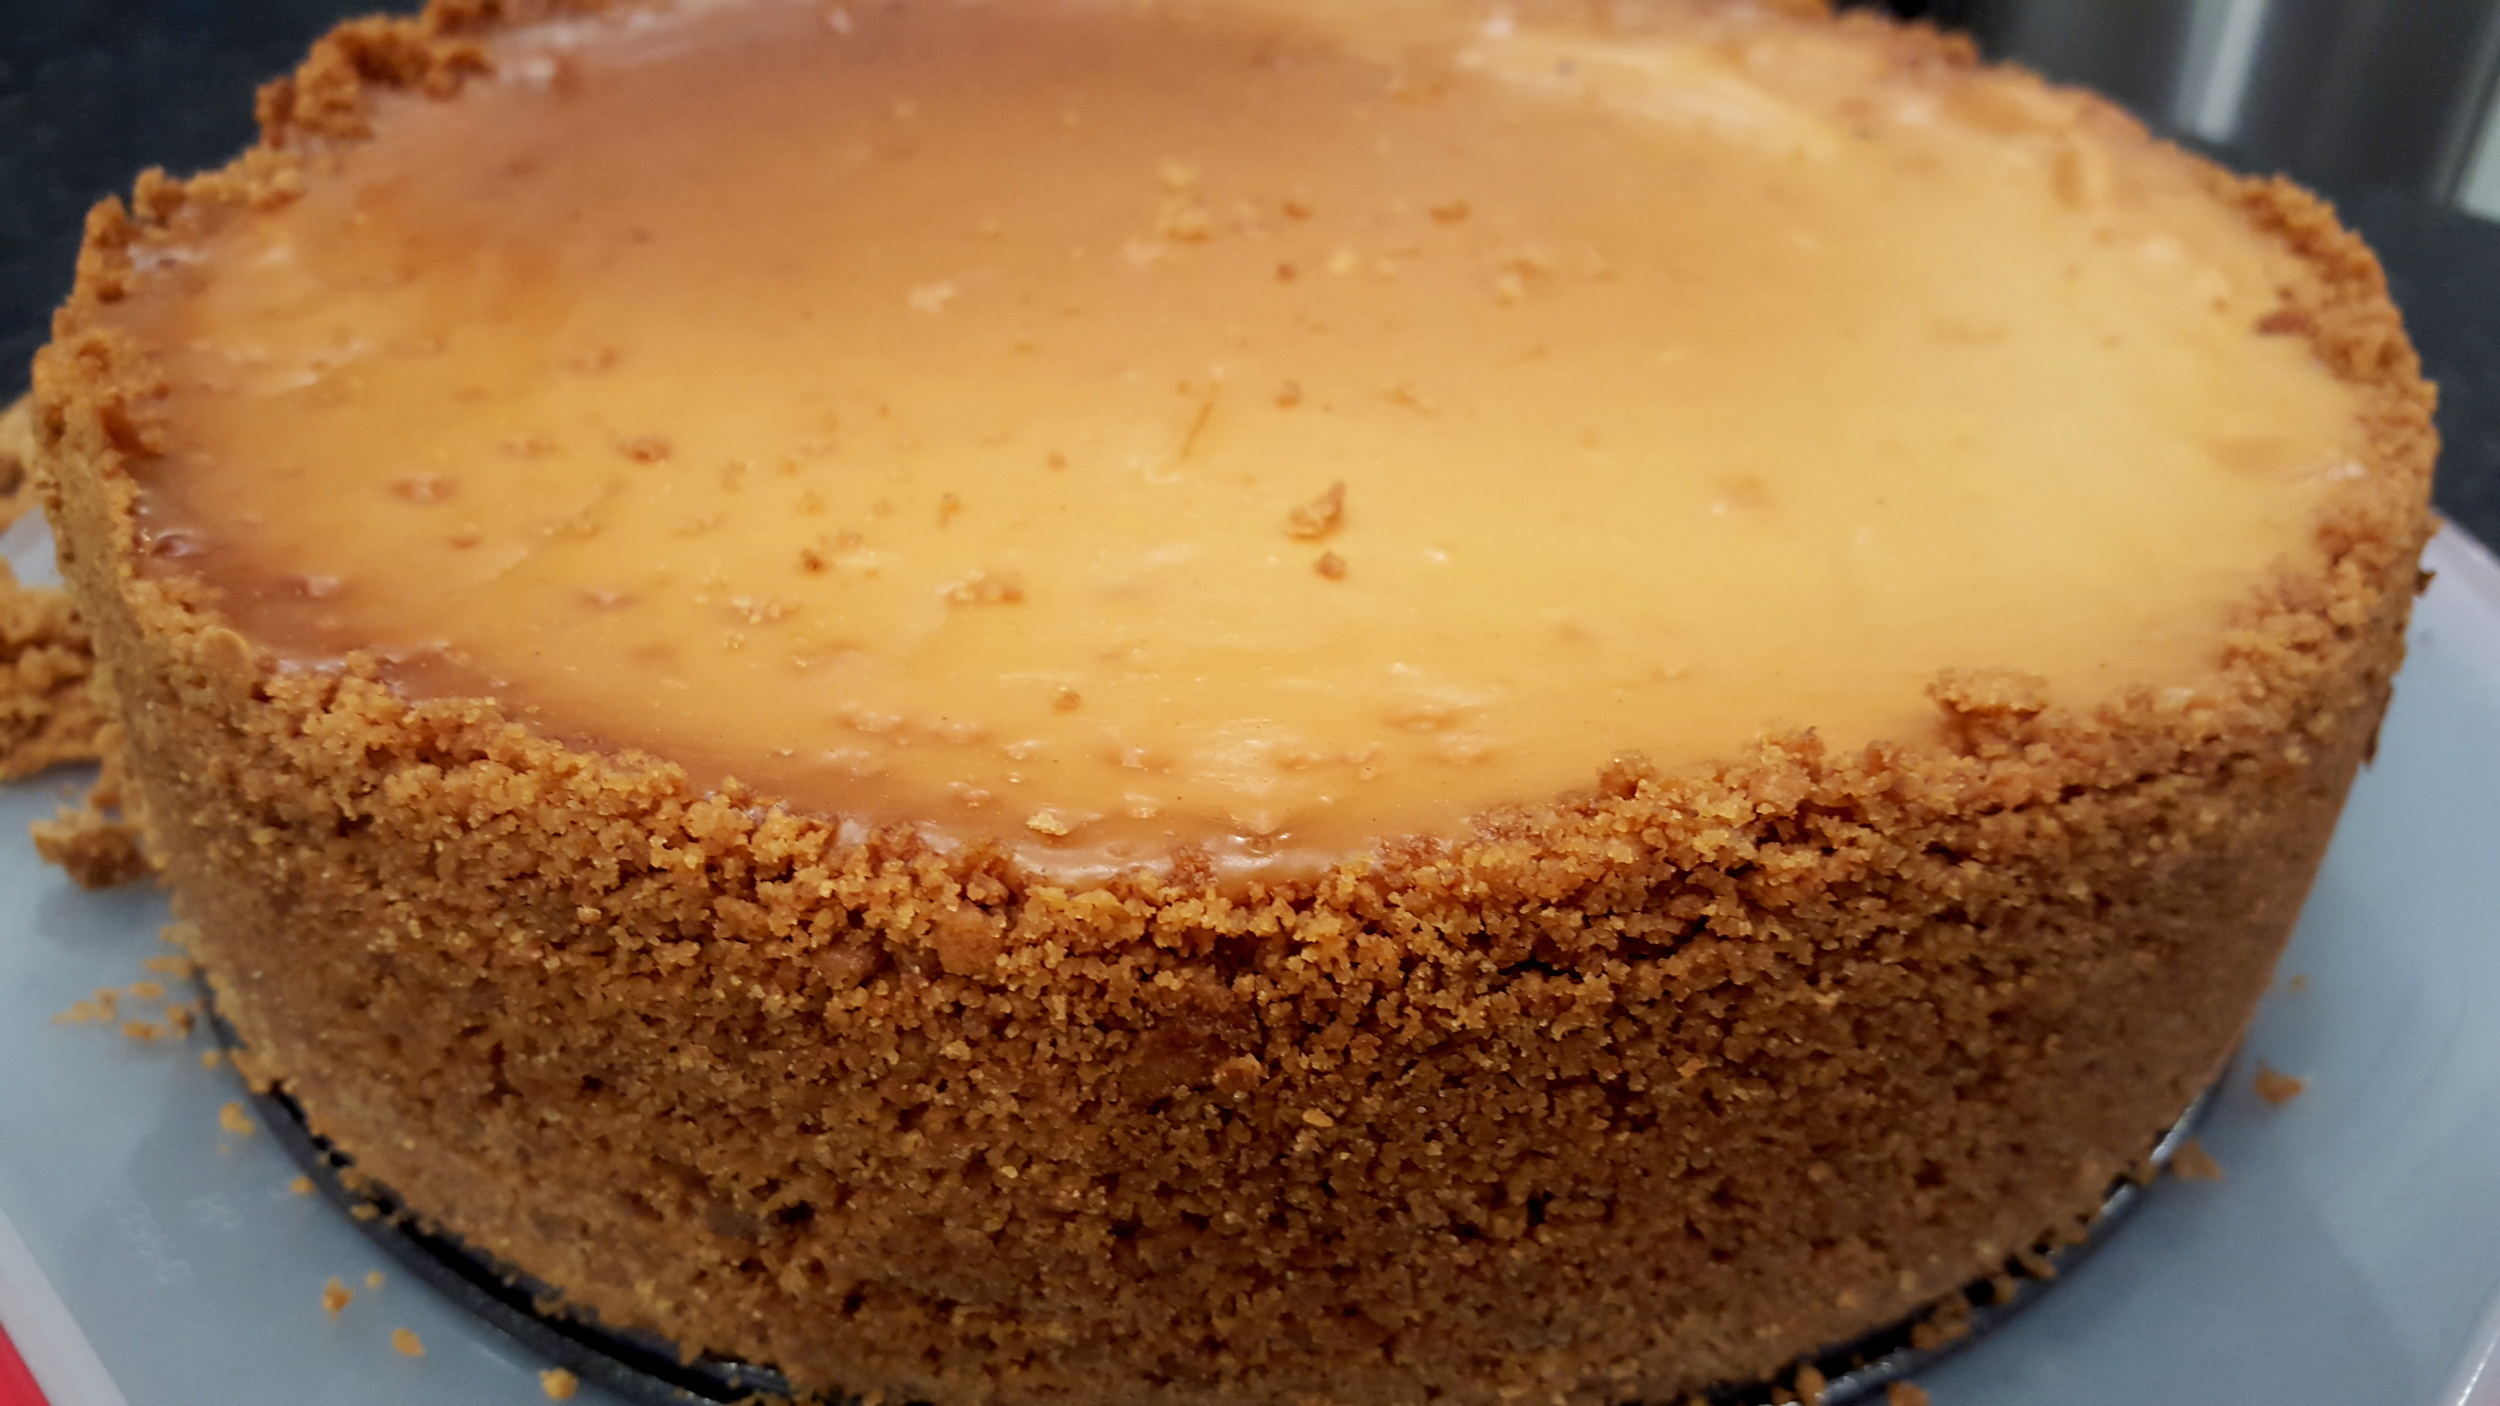 The finished cheesecake